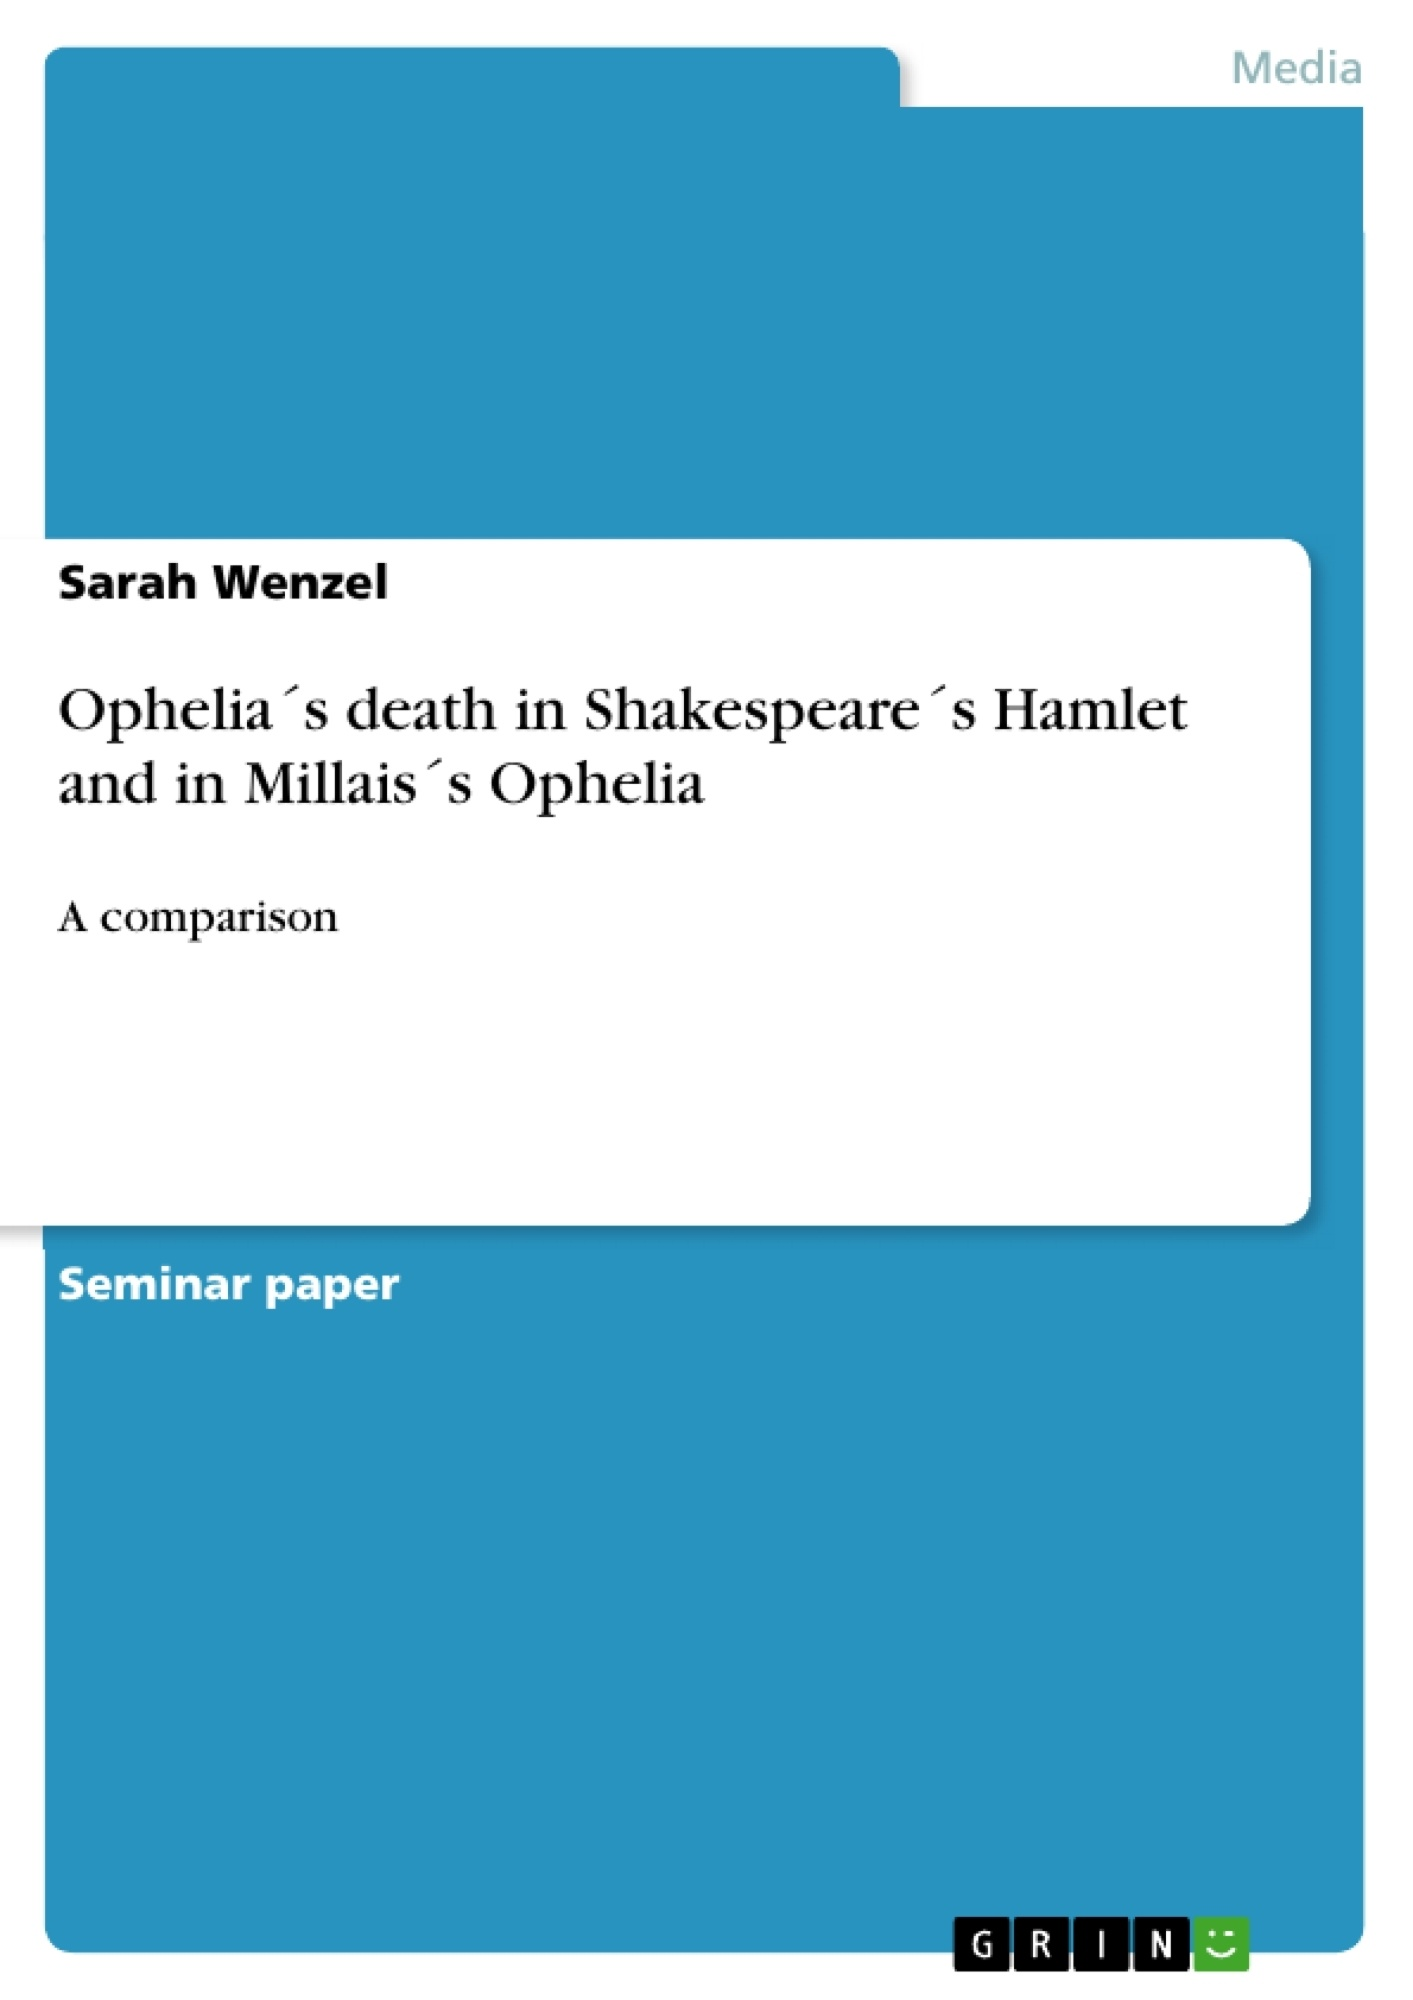 Title: Ophelia´s death in Shakespeare´s Hamlet and in Millais´s Ophelia